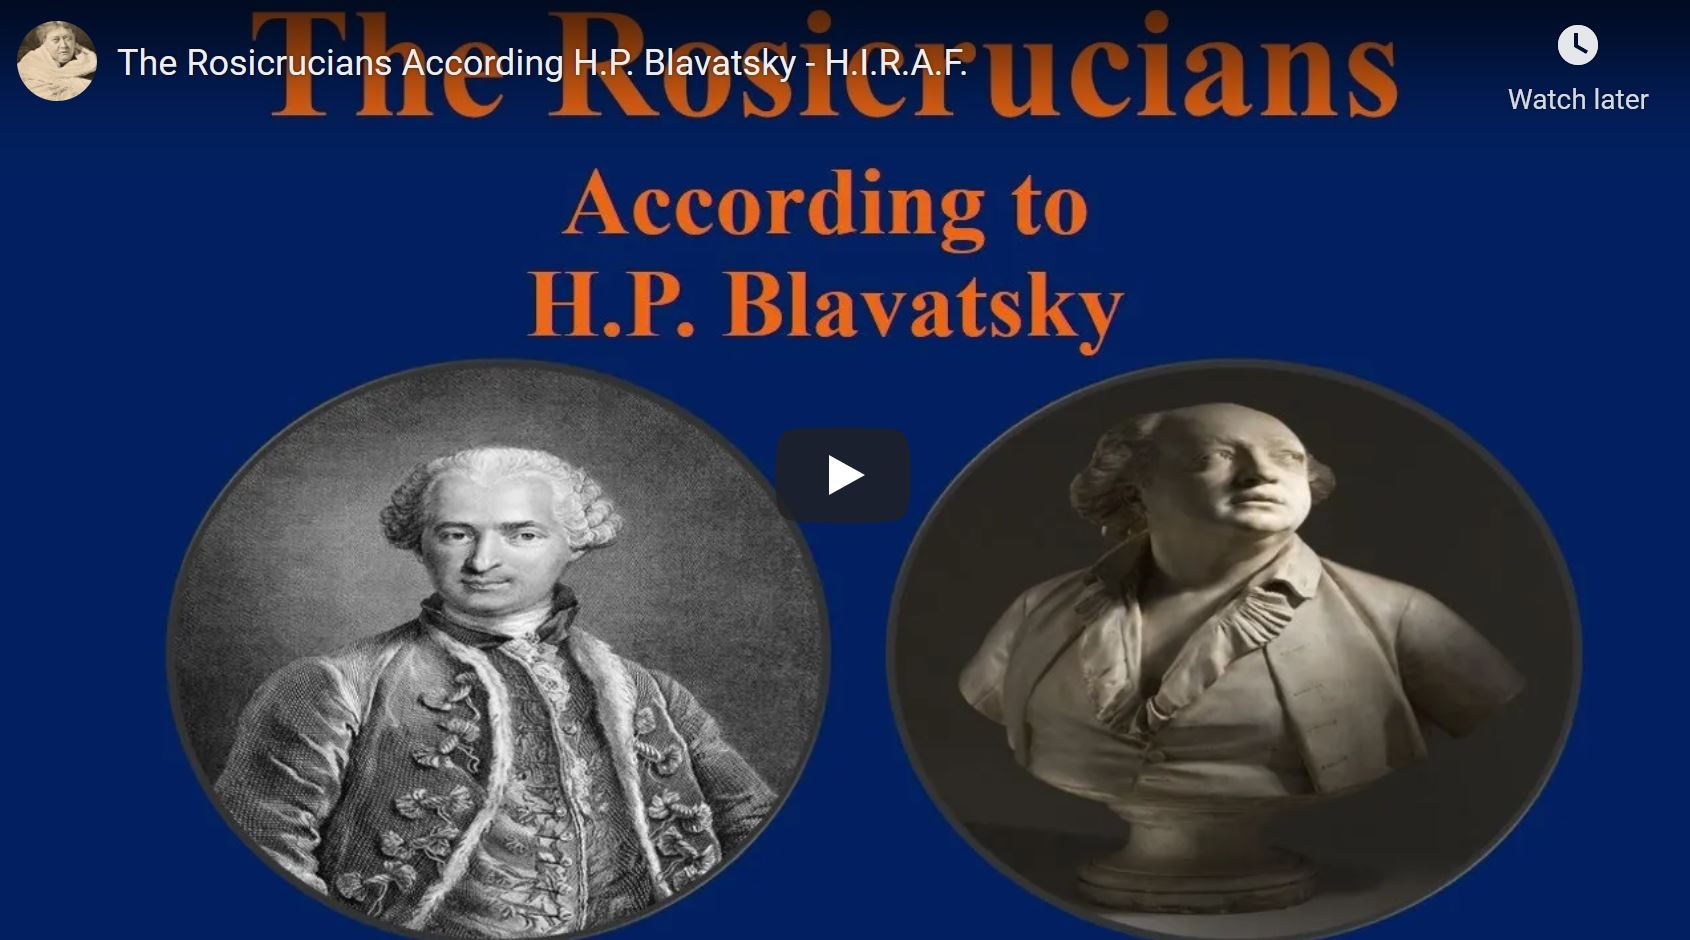 The Rosicrucians According H.P. Blavatsky